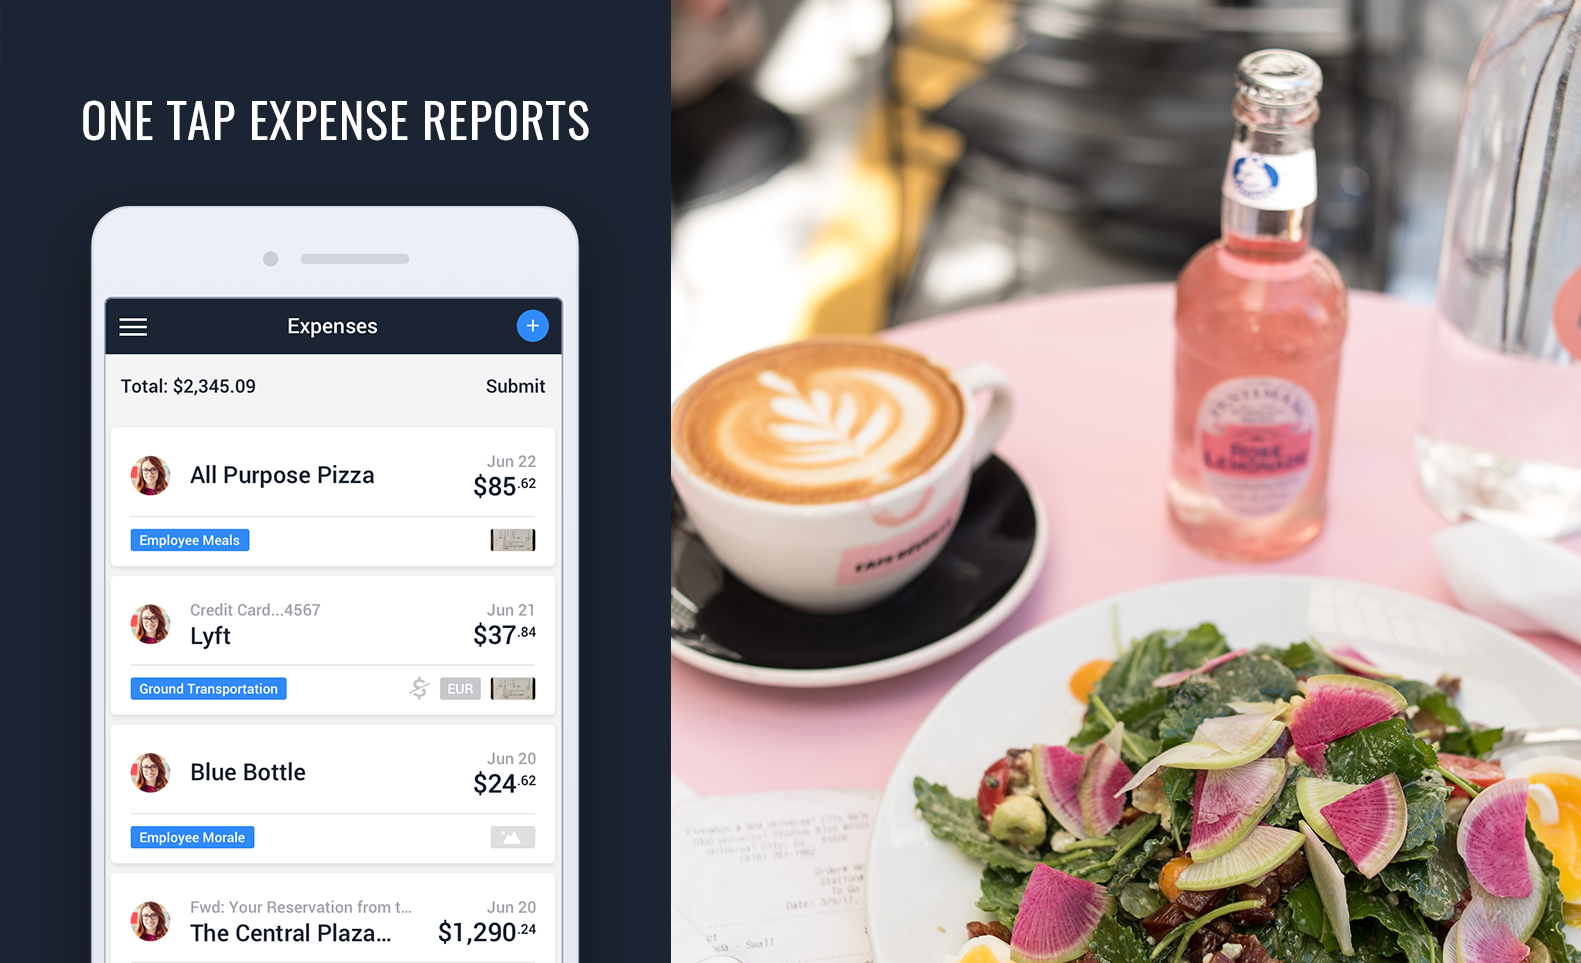 One tap expense reports